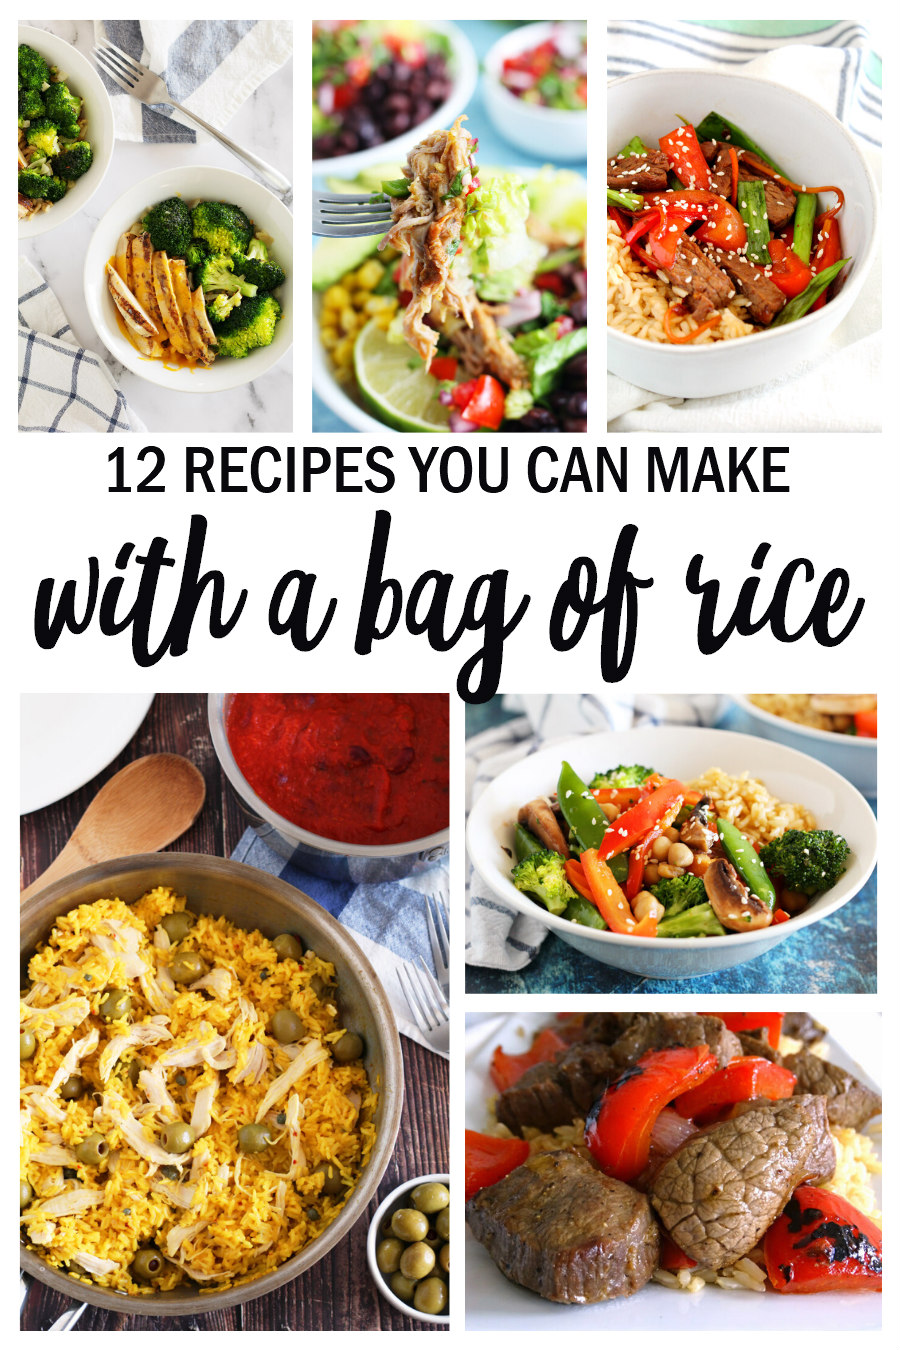 recipes you can make with a bag of rice